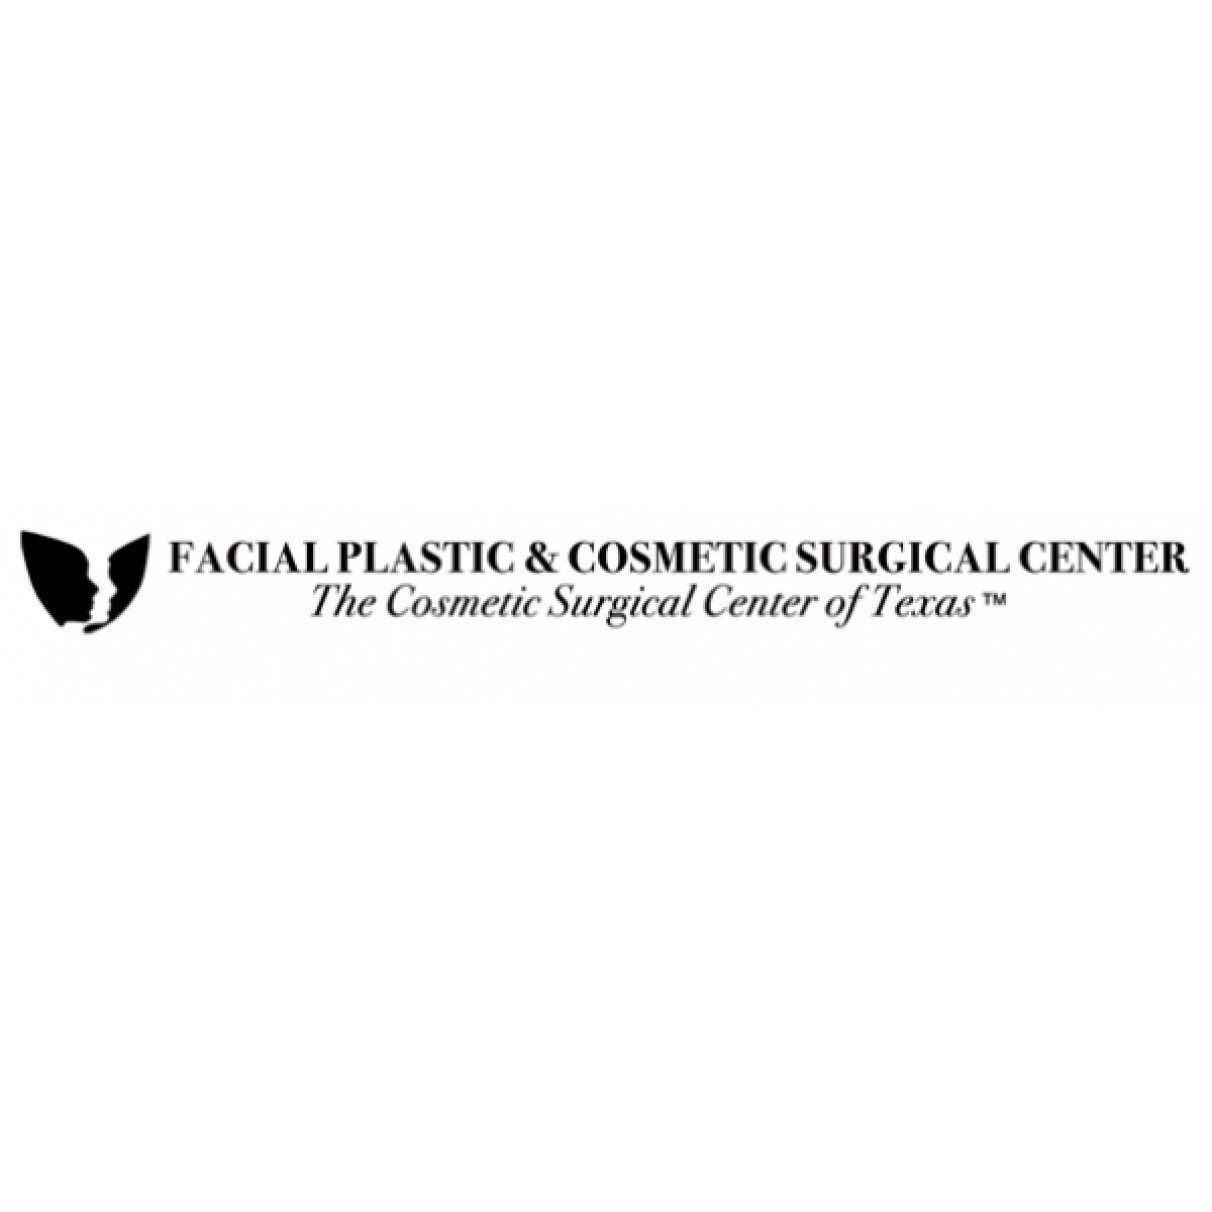 Facial Plastic & Cosmetic Surgical Center